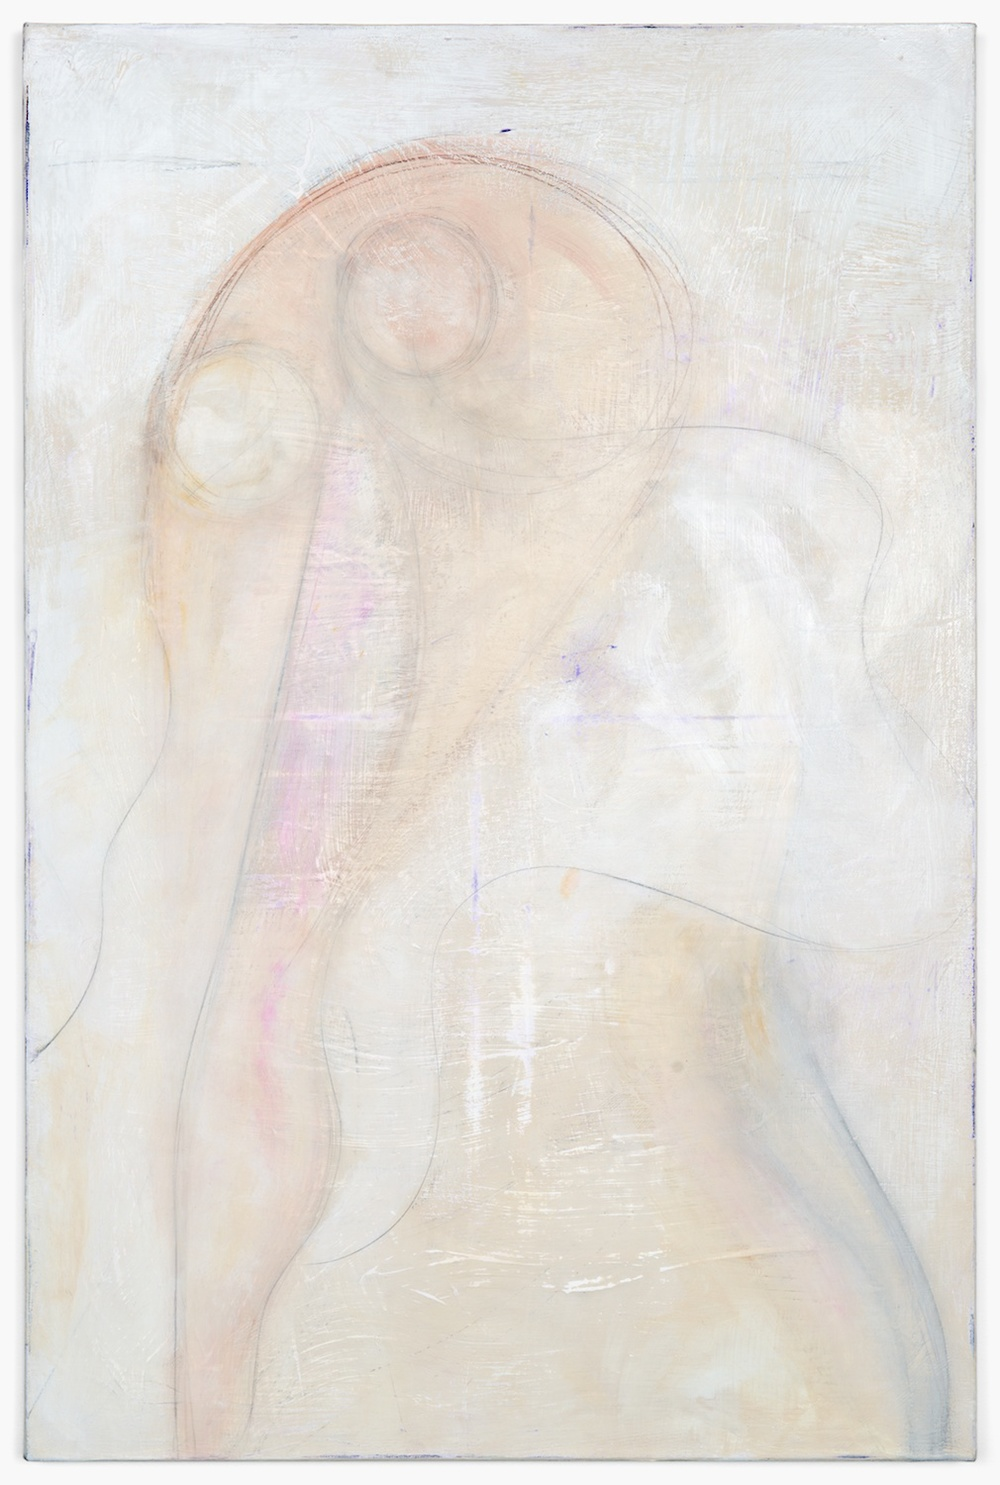 Lily Ludlow  Somnambulist  2012 Acrylic, graphite, and gesso on canvas 36h x 24w in LL007